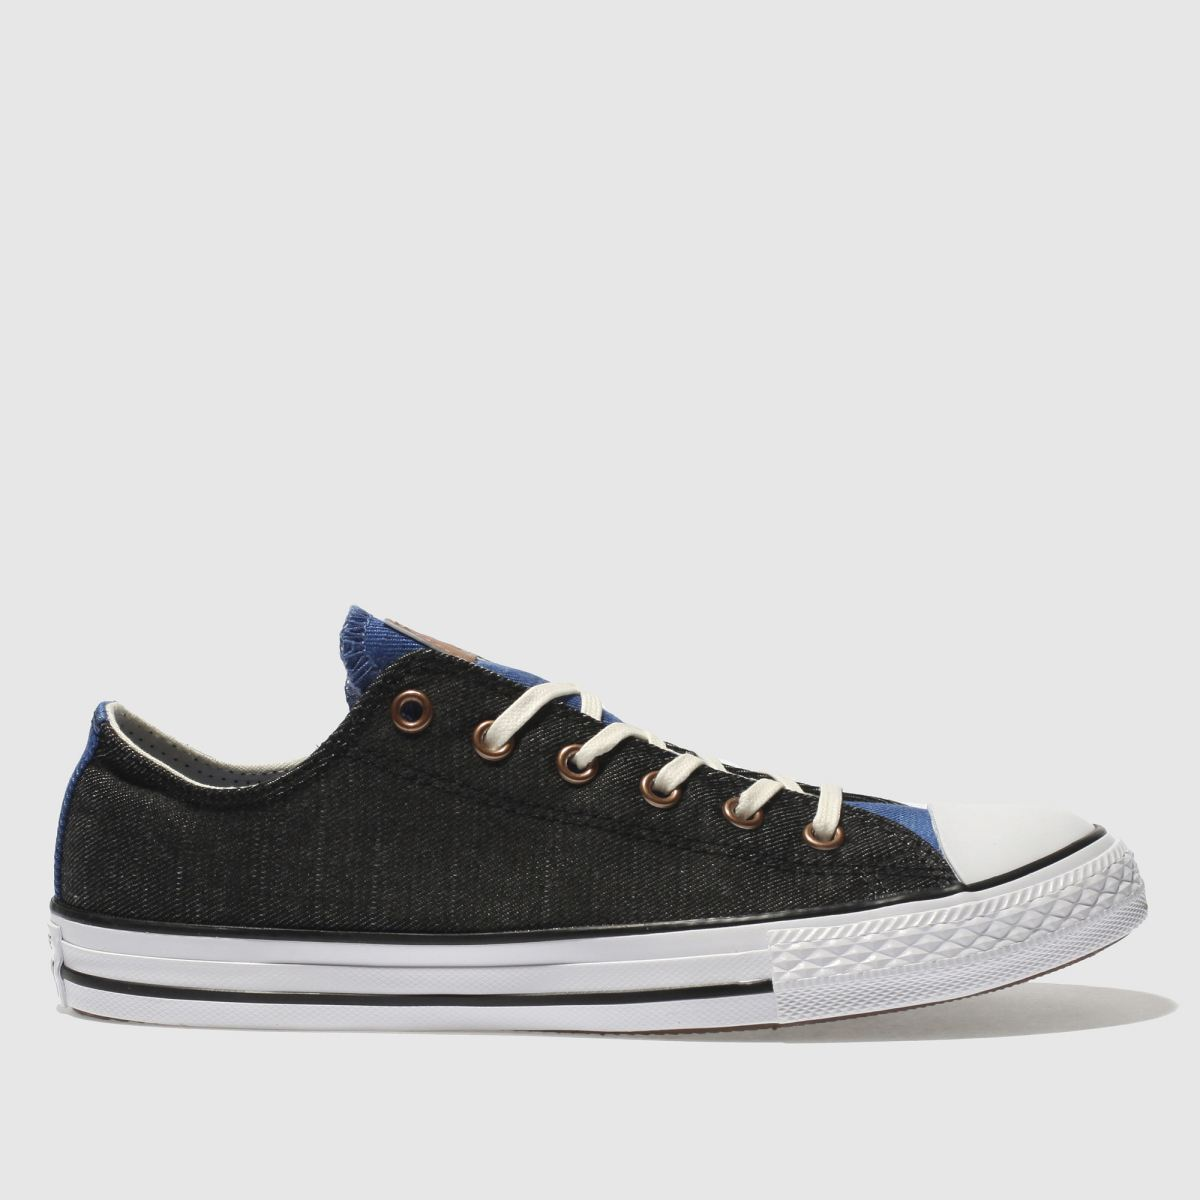 Converse Black And Blue Chuck Taylor All Star Lo Boys Youth Trainers